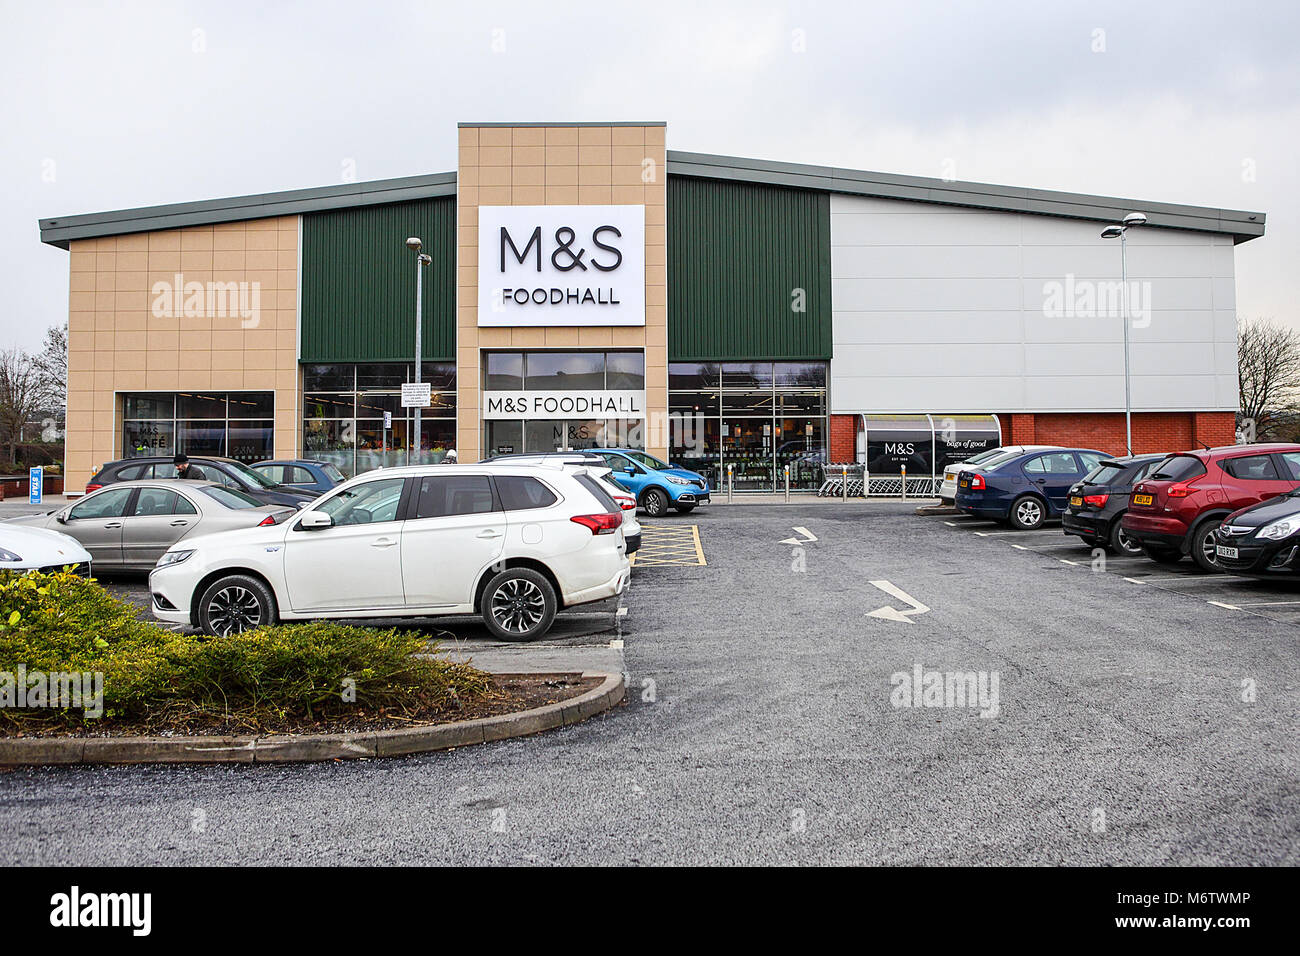 Marks and Spencer Foodhall, viewed here at their business in Meole Brace Retail Park. - Stock Image